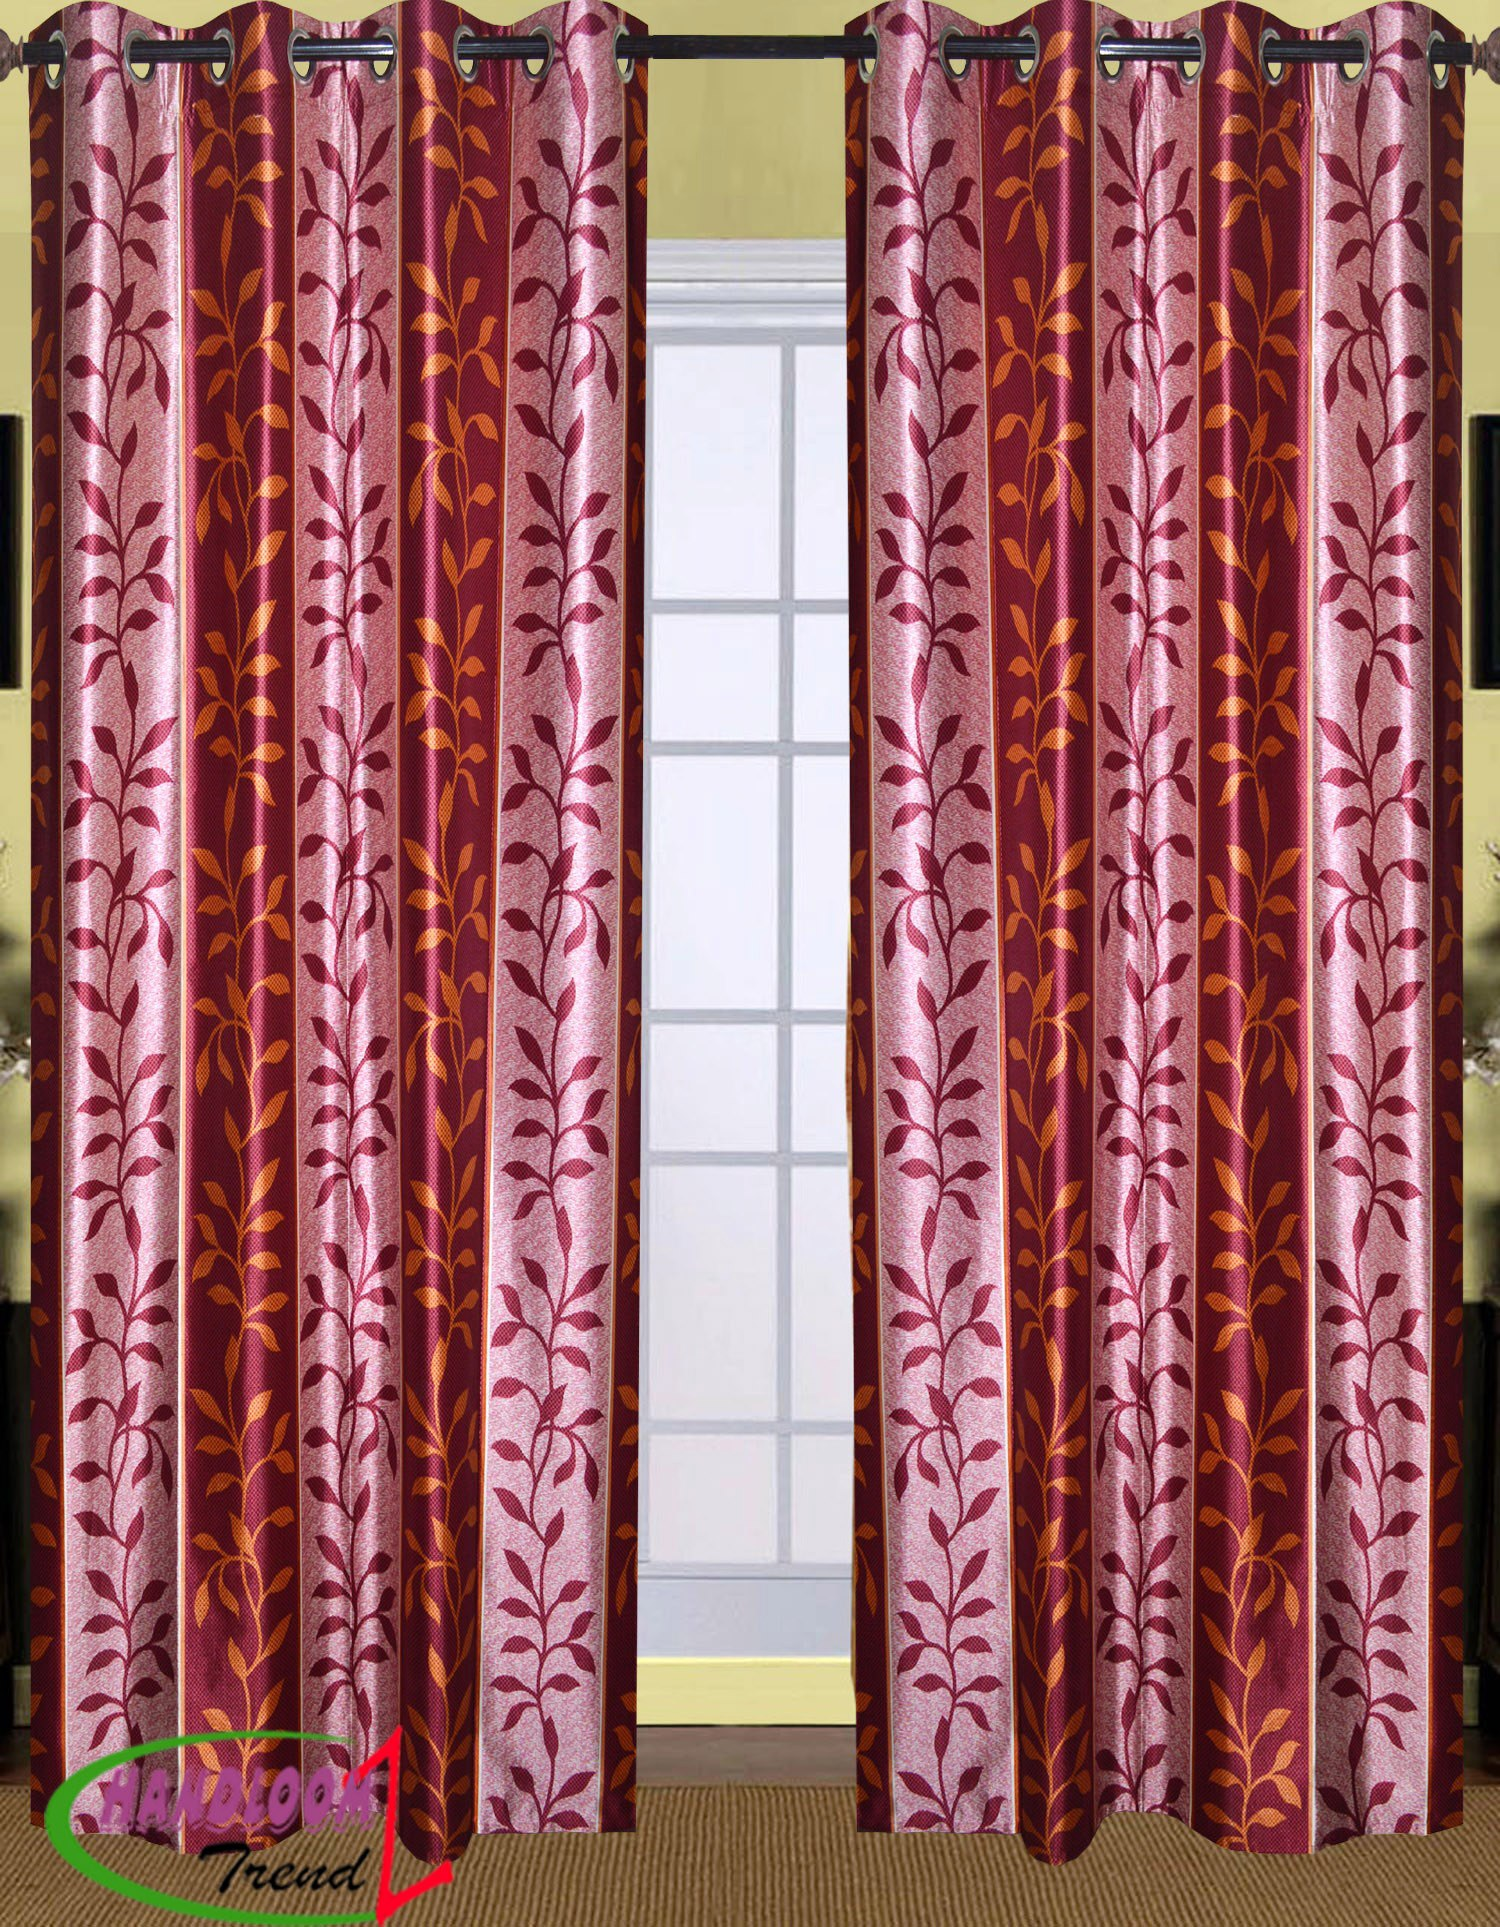 Curtain Drawing Leaves Design Door G255DR Home